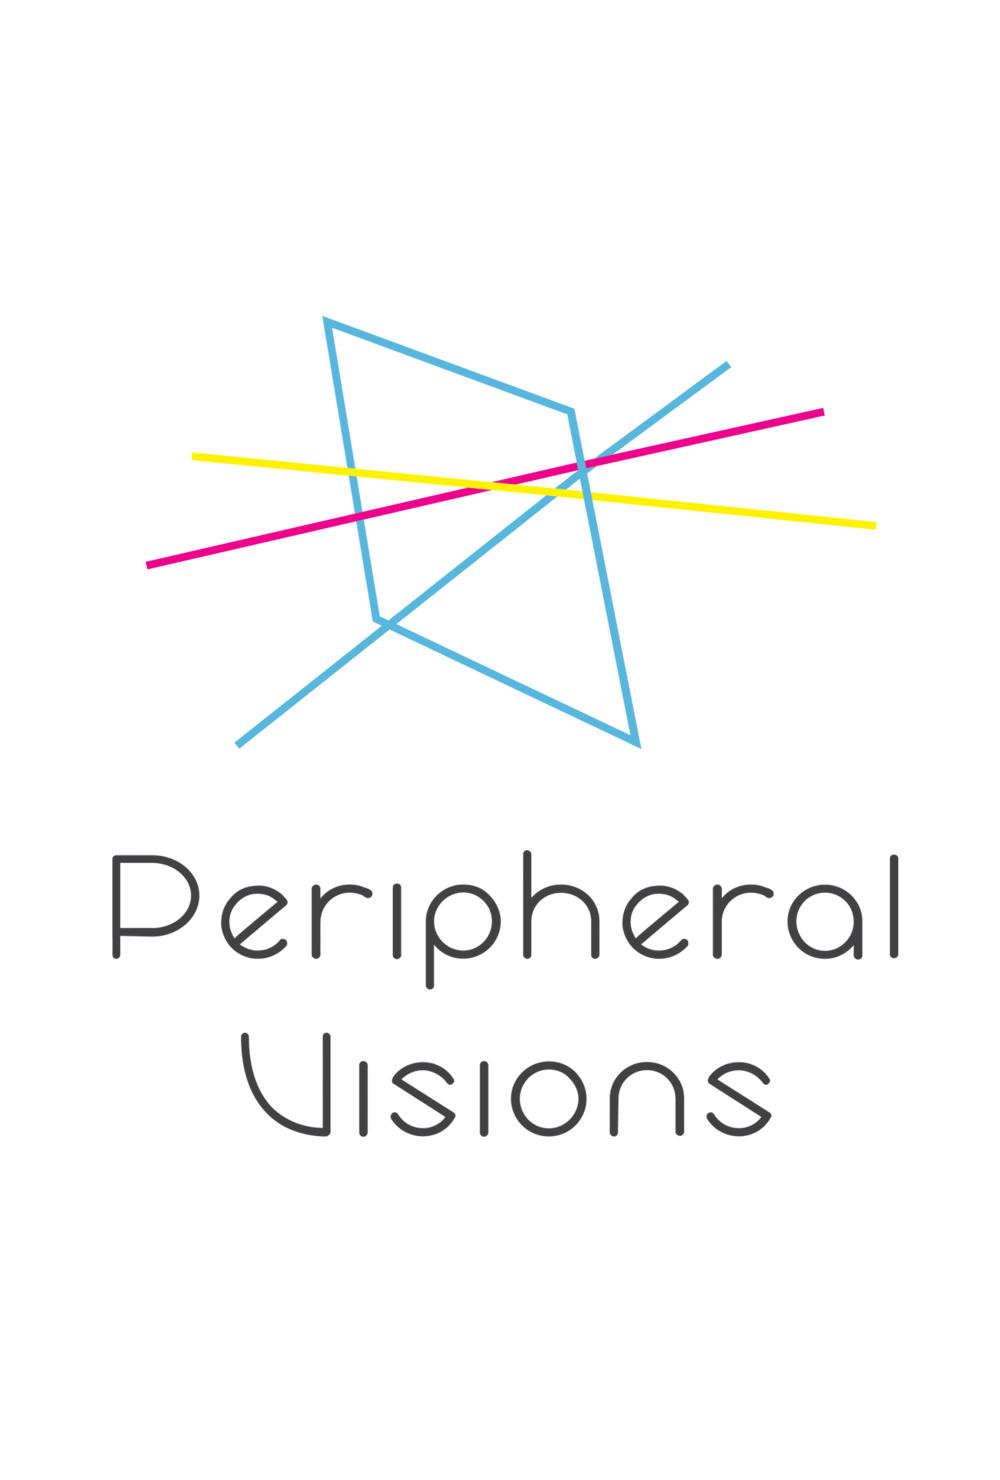 This logo was created for the University of Southern California.   Peripheral Visions   was a symposium presented by USC in collaboration with the Getty Research Institute.